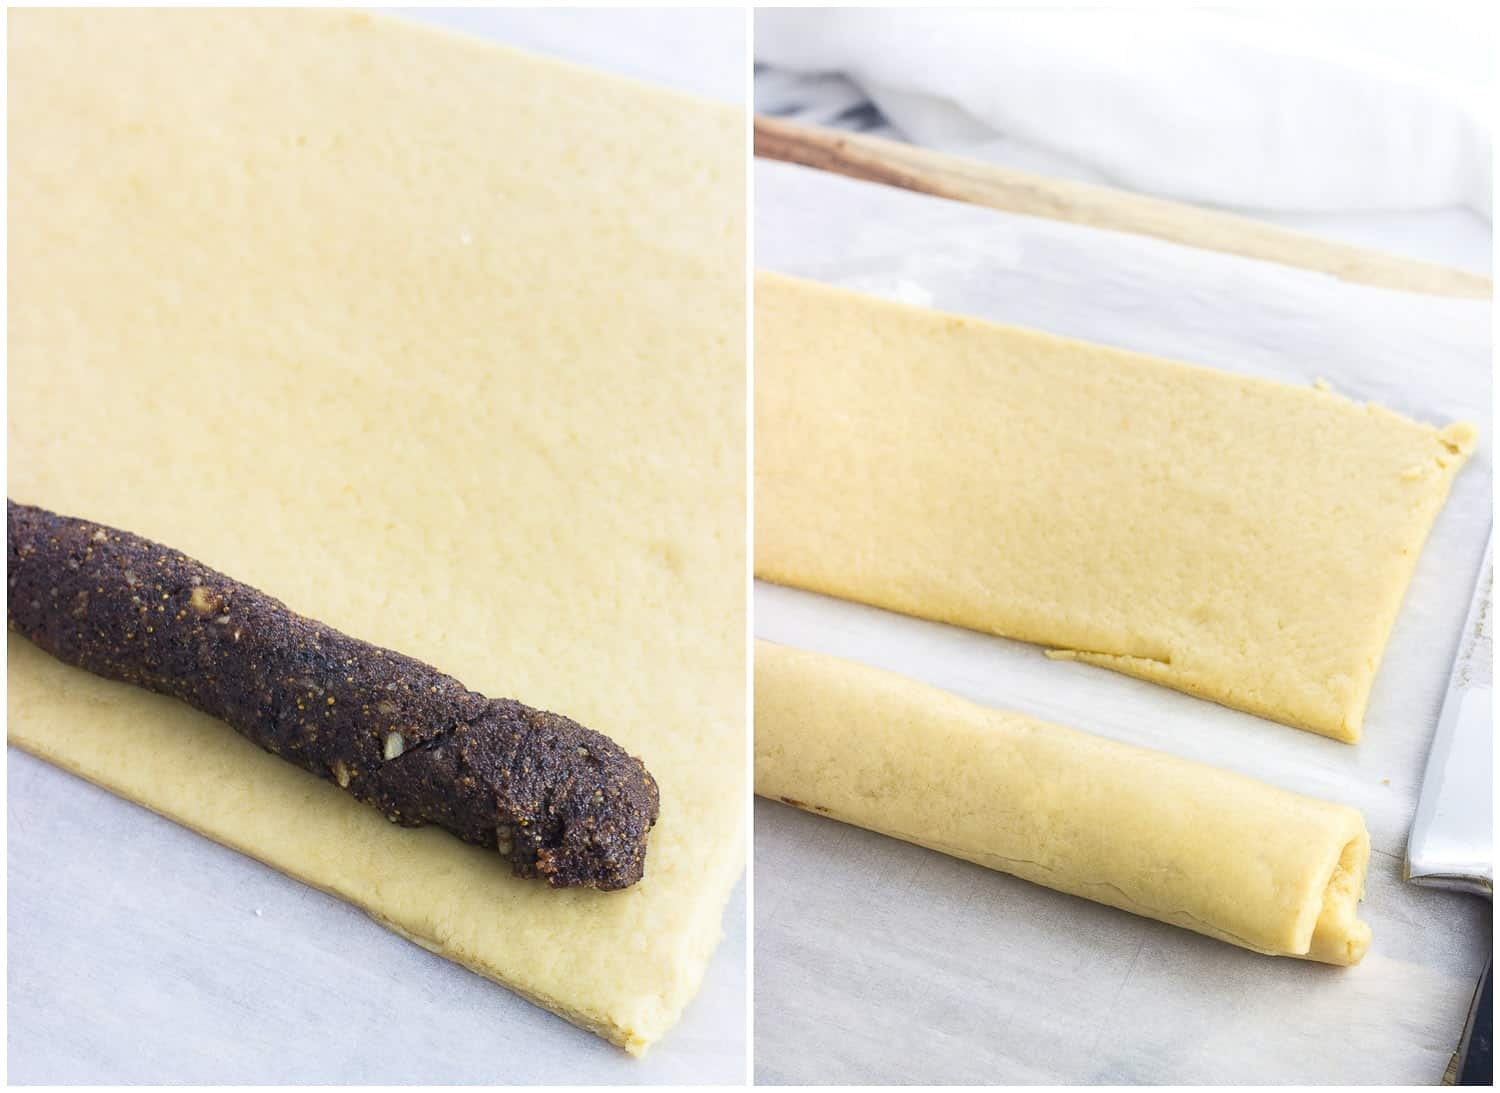 A side-by-side photo of (left) the filling arranged on the dough, and (right) the dough rolled around the filling, ready to be sliced into cookies